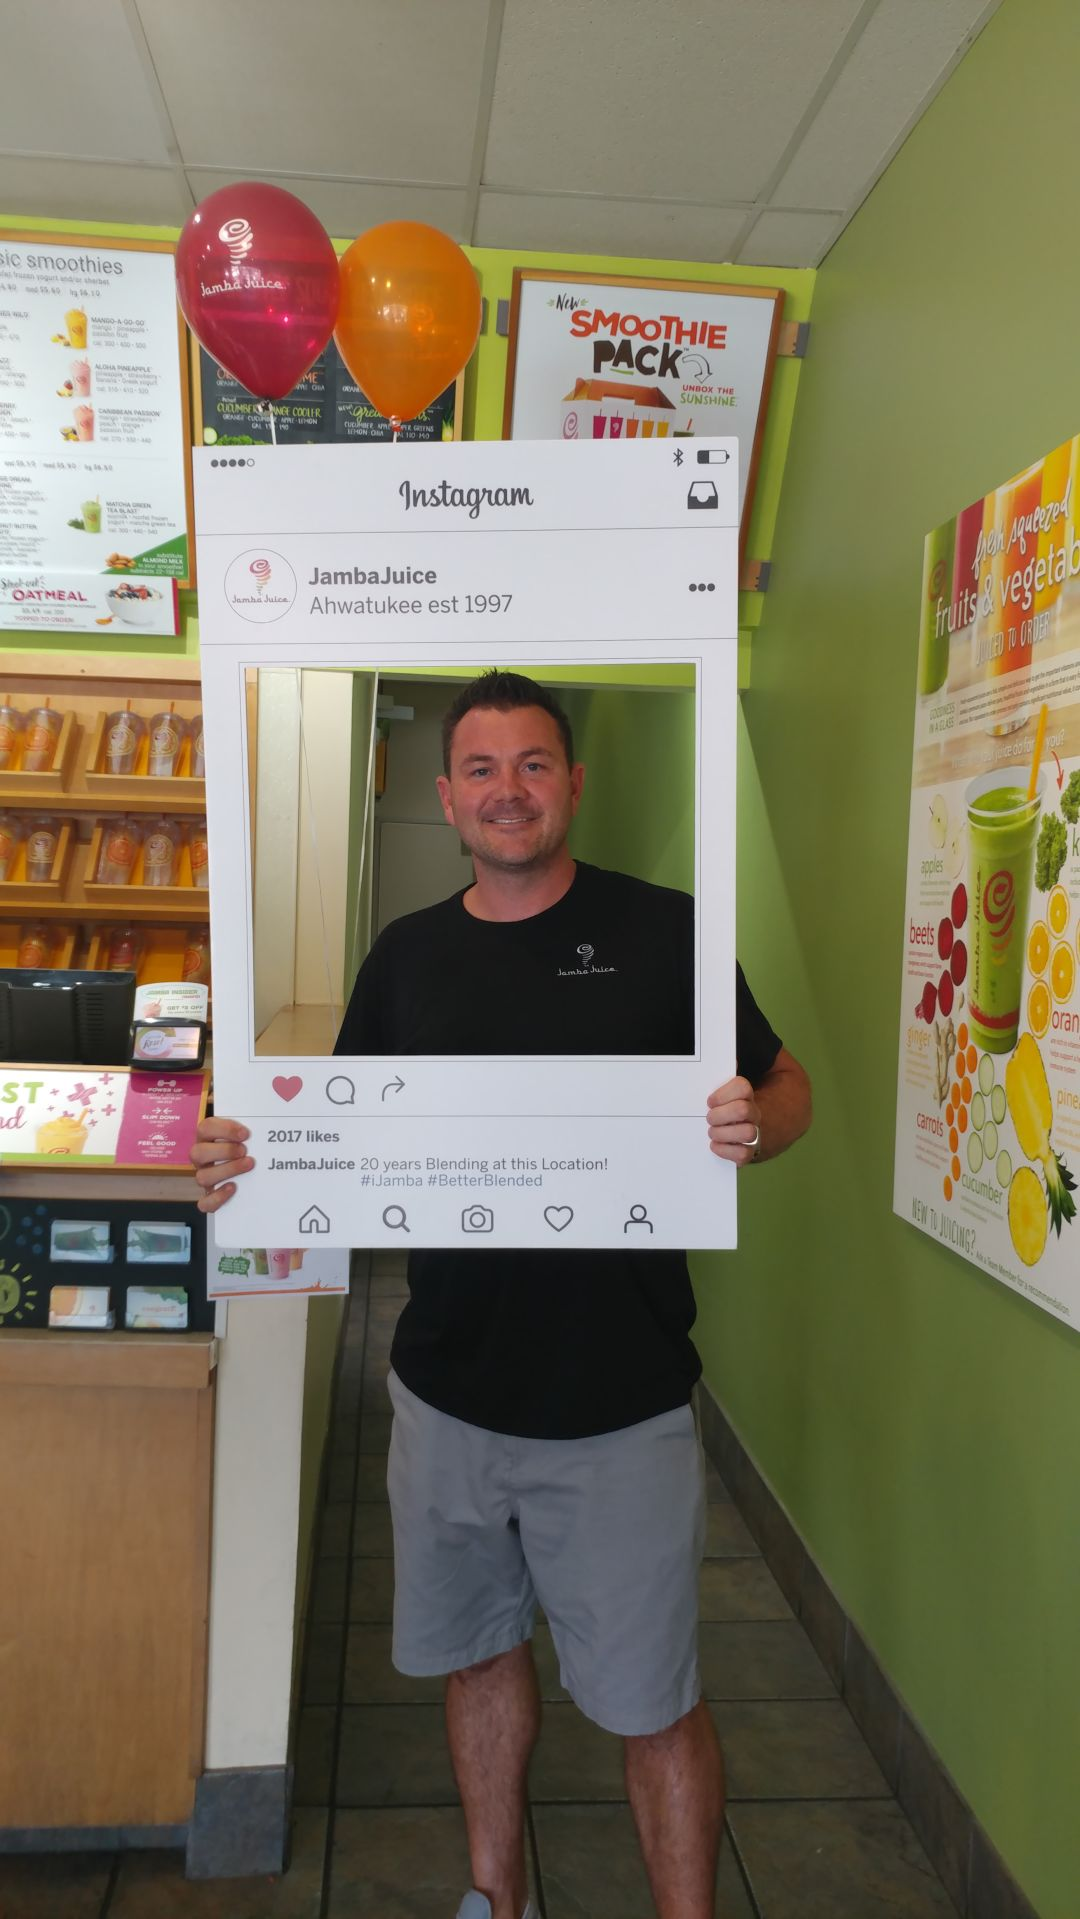 Scott Timmons, managing owner, is marking Jamba Juice's 20th year in Ahwatukee.